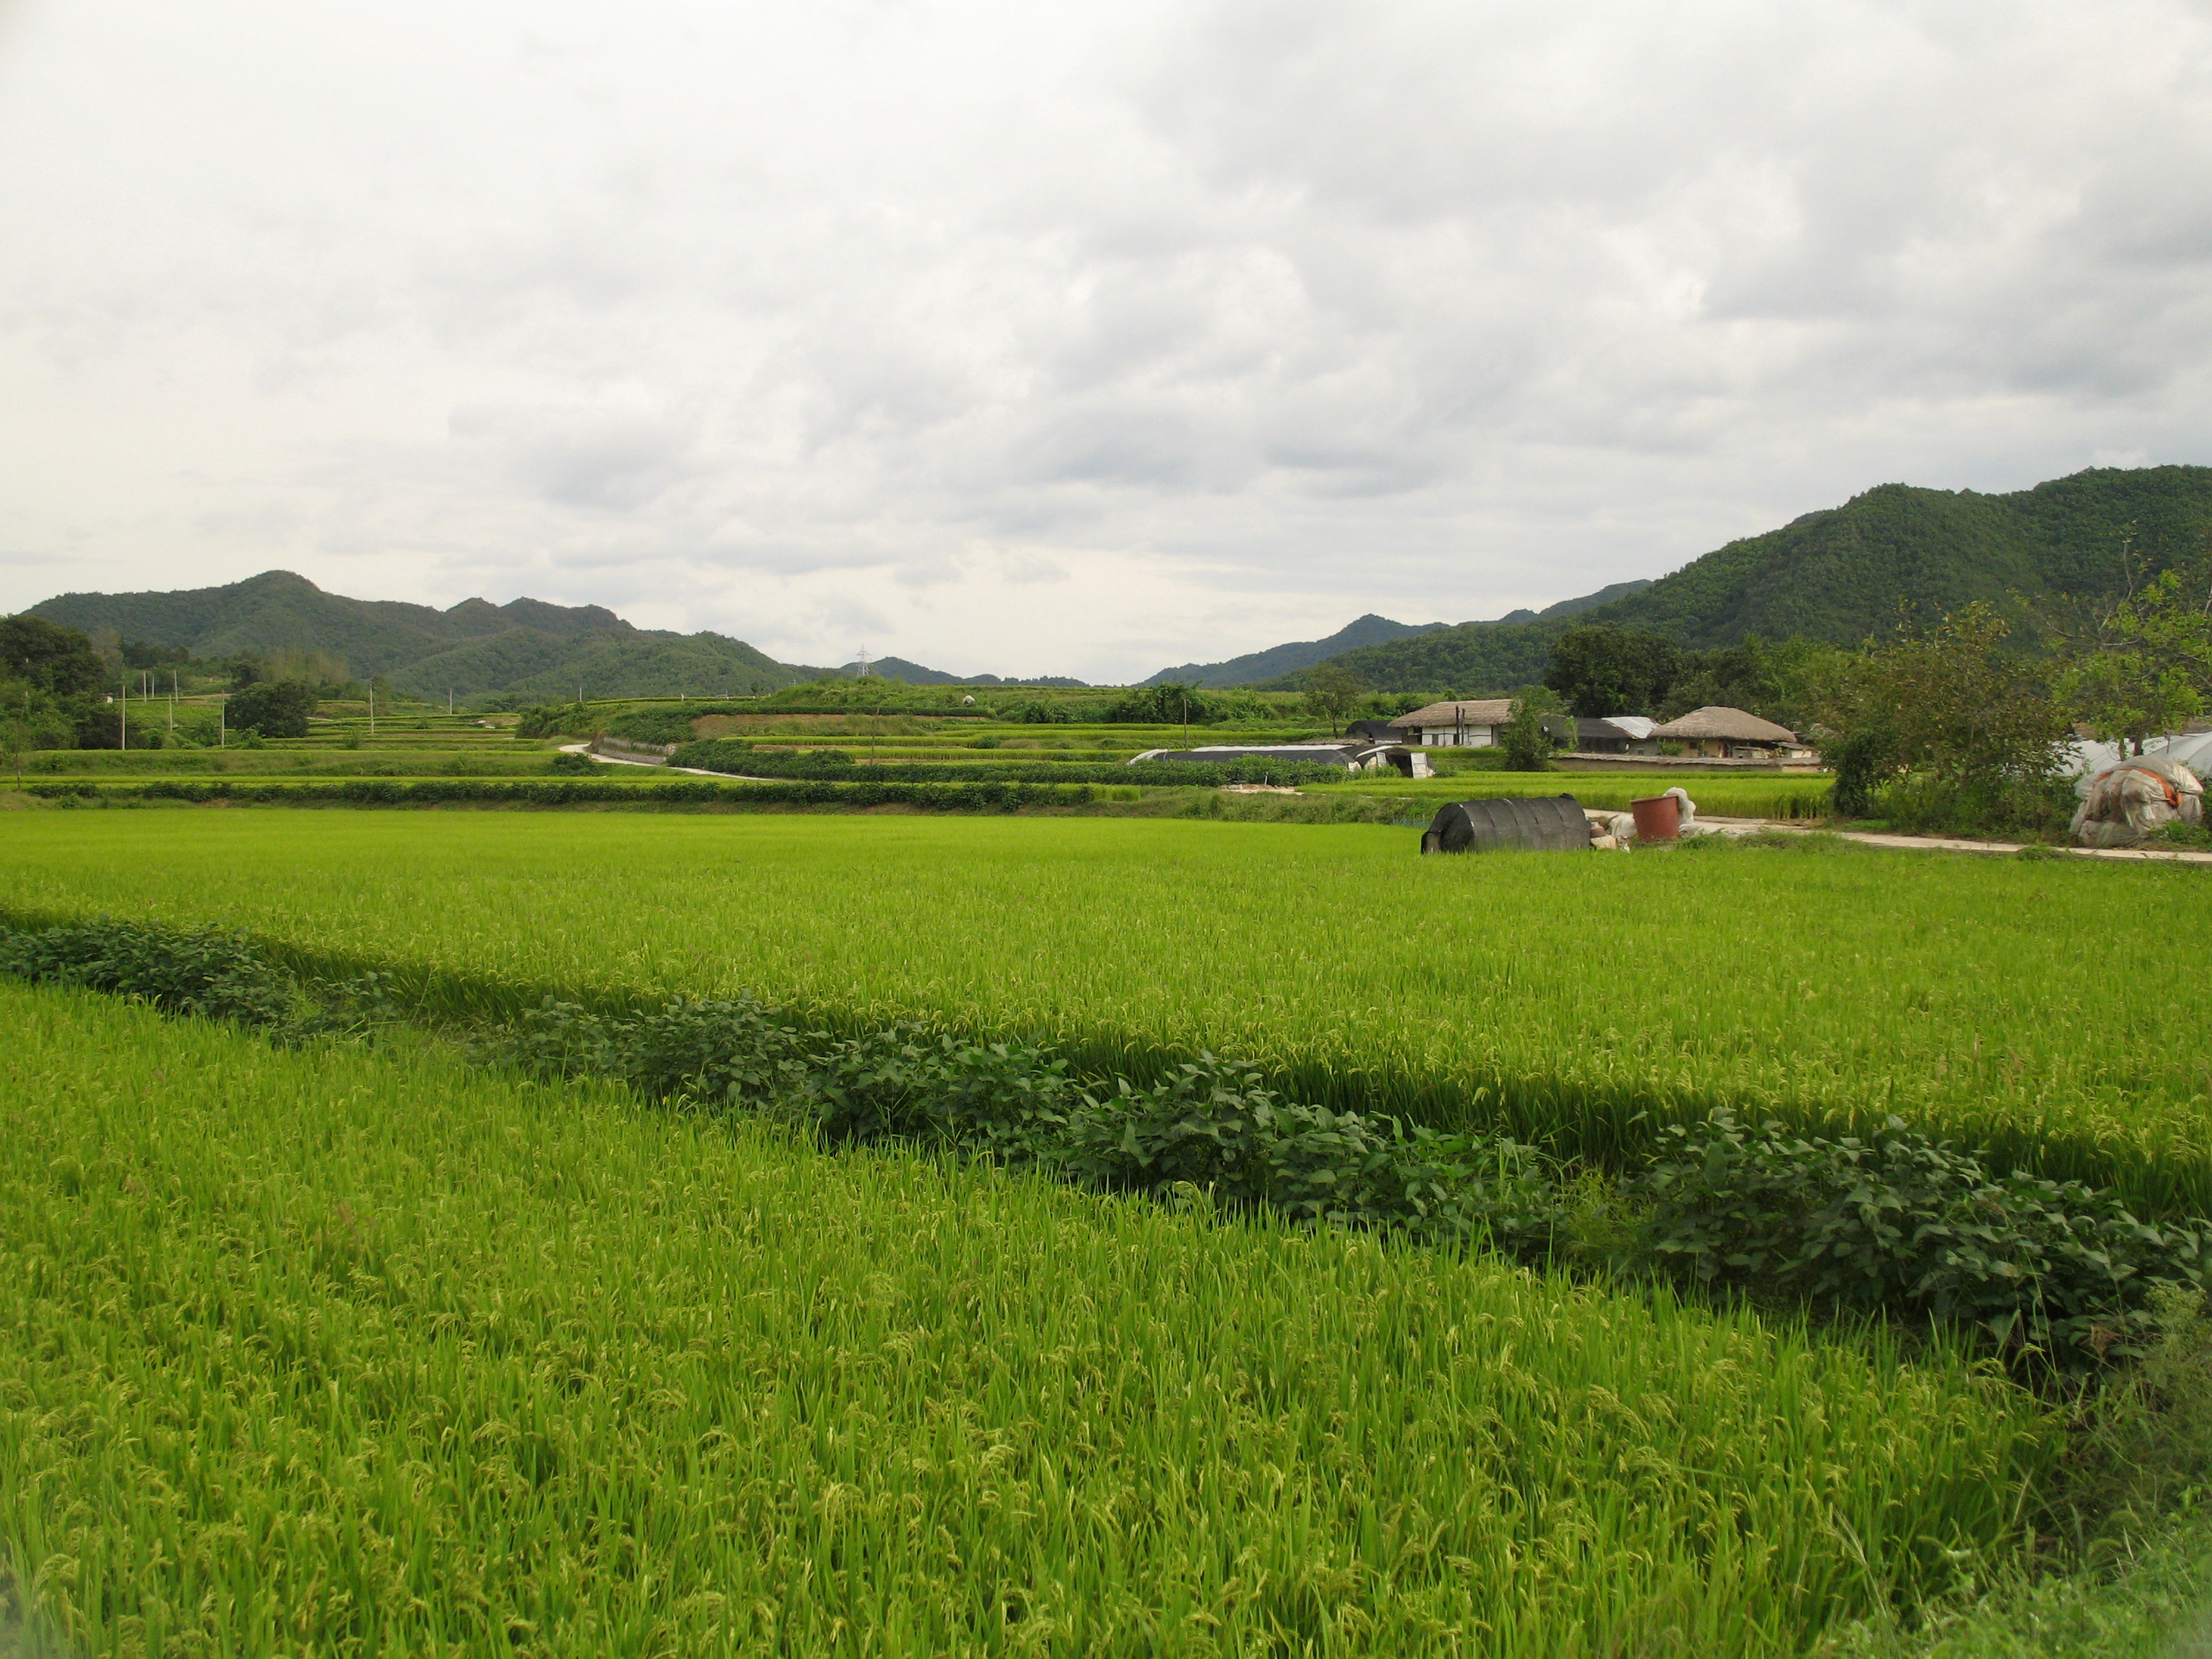 rice fields - photo #26